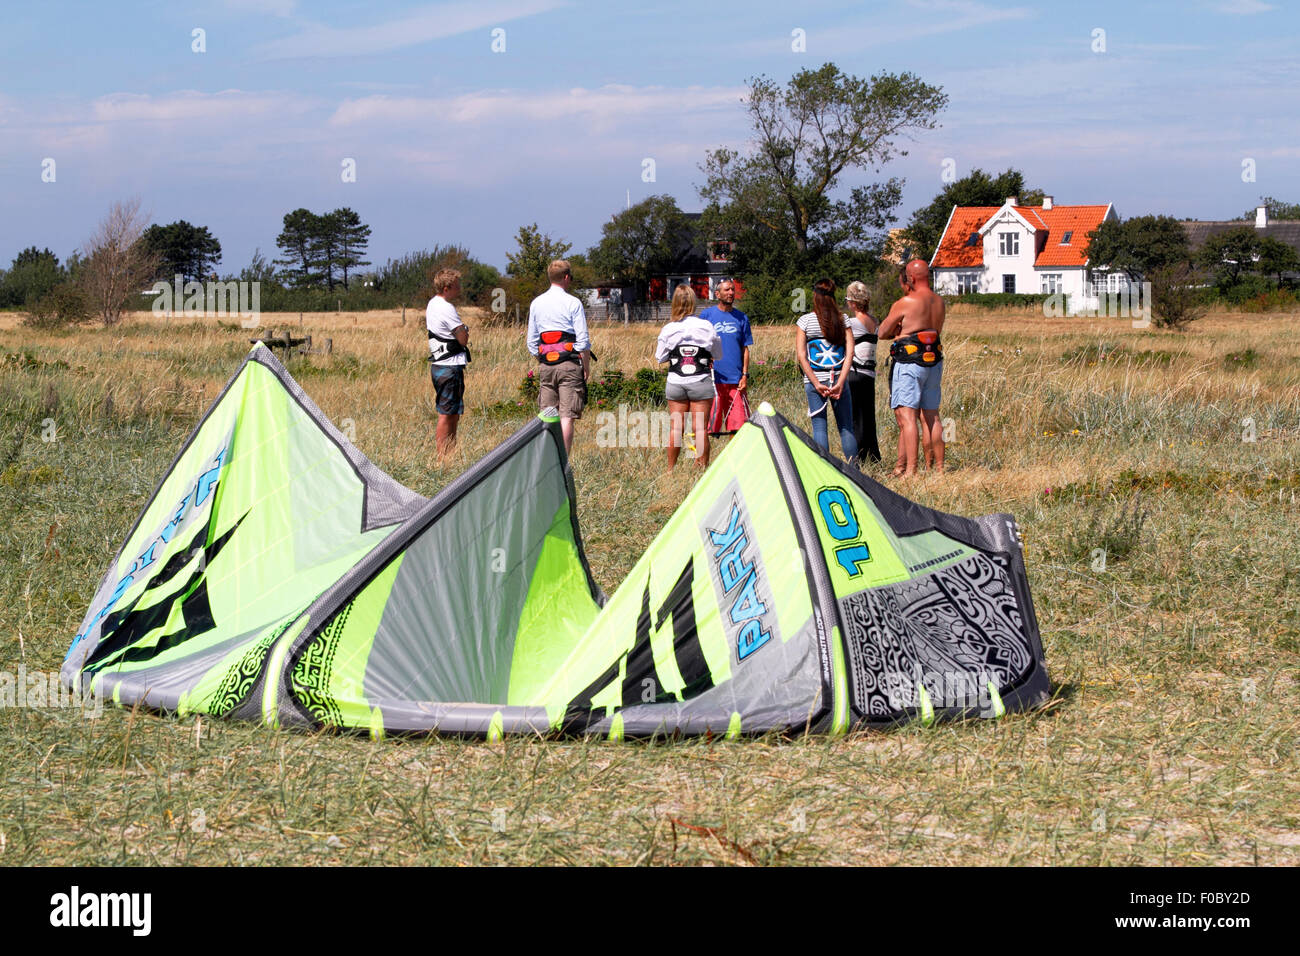 Introductory briefing to kitesurfing at Lynæs Surf Centre, Hundested, Denmark - Stock Image